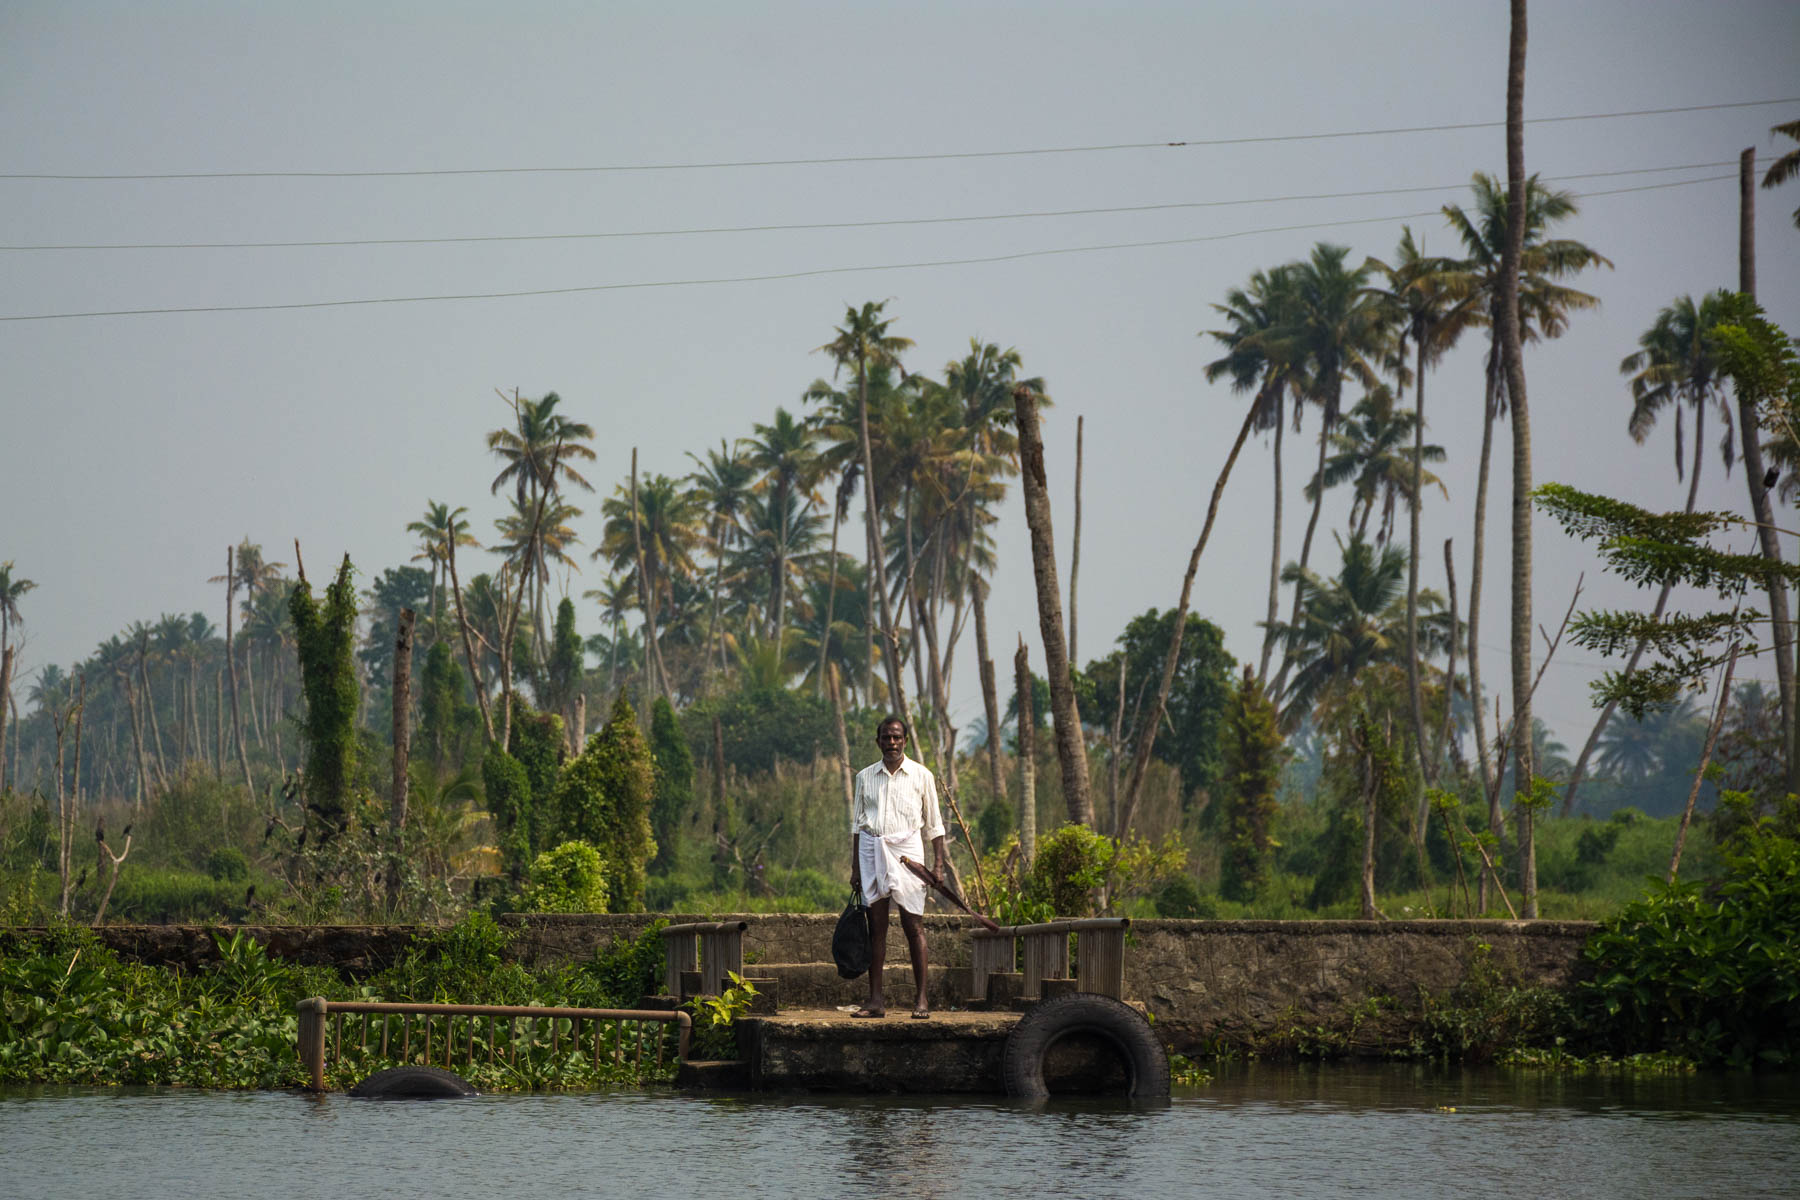 A man waiting for the budget ferry in Alleppey (Alappuzha), Kerala, India - Lost With Purpose